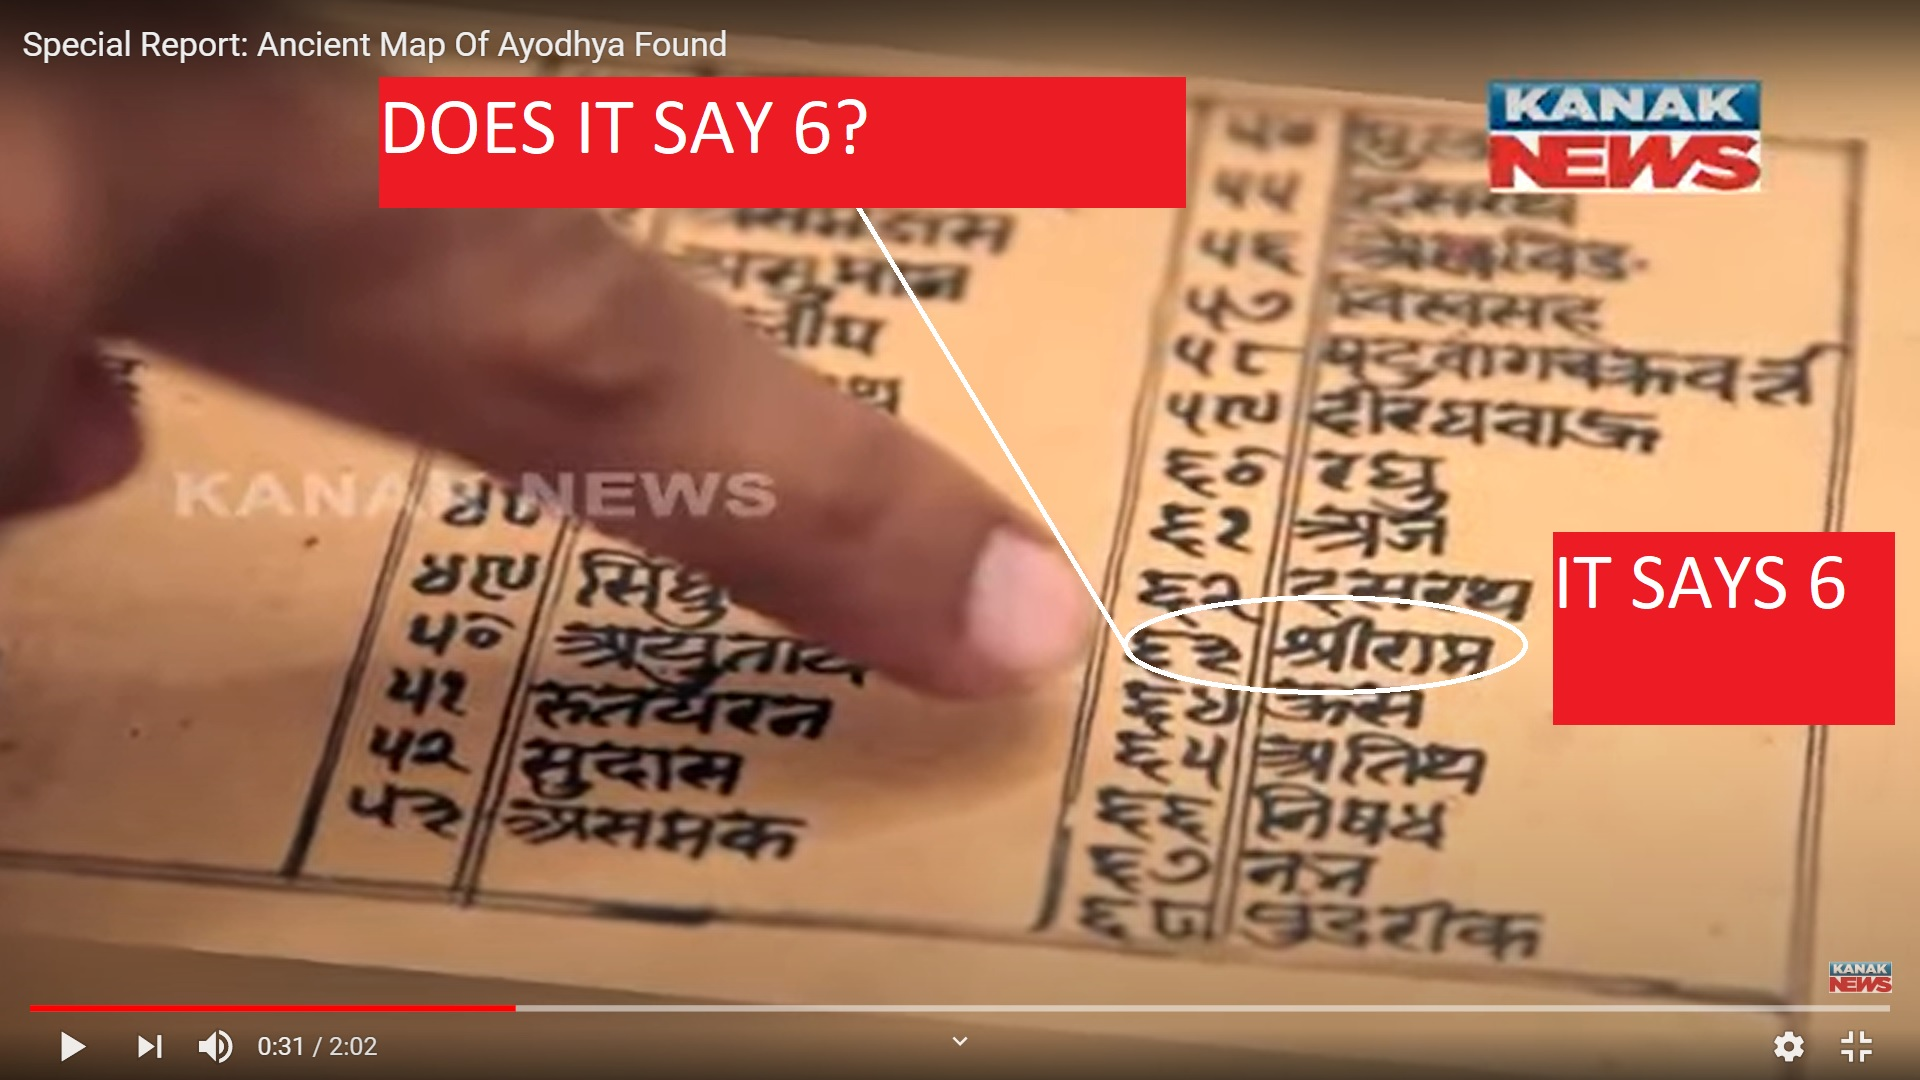 AYODHYA MAP FOUND IT SAYS RAM NUMBER IS 6